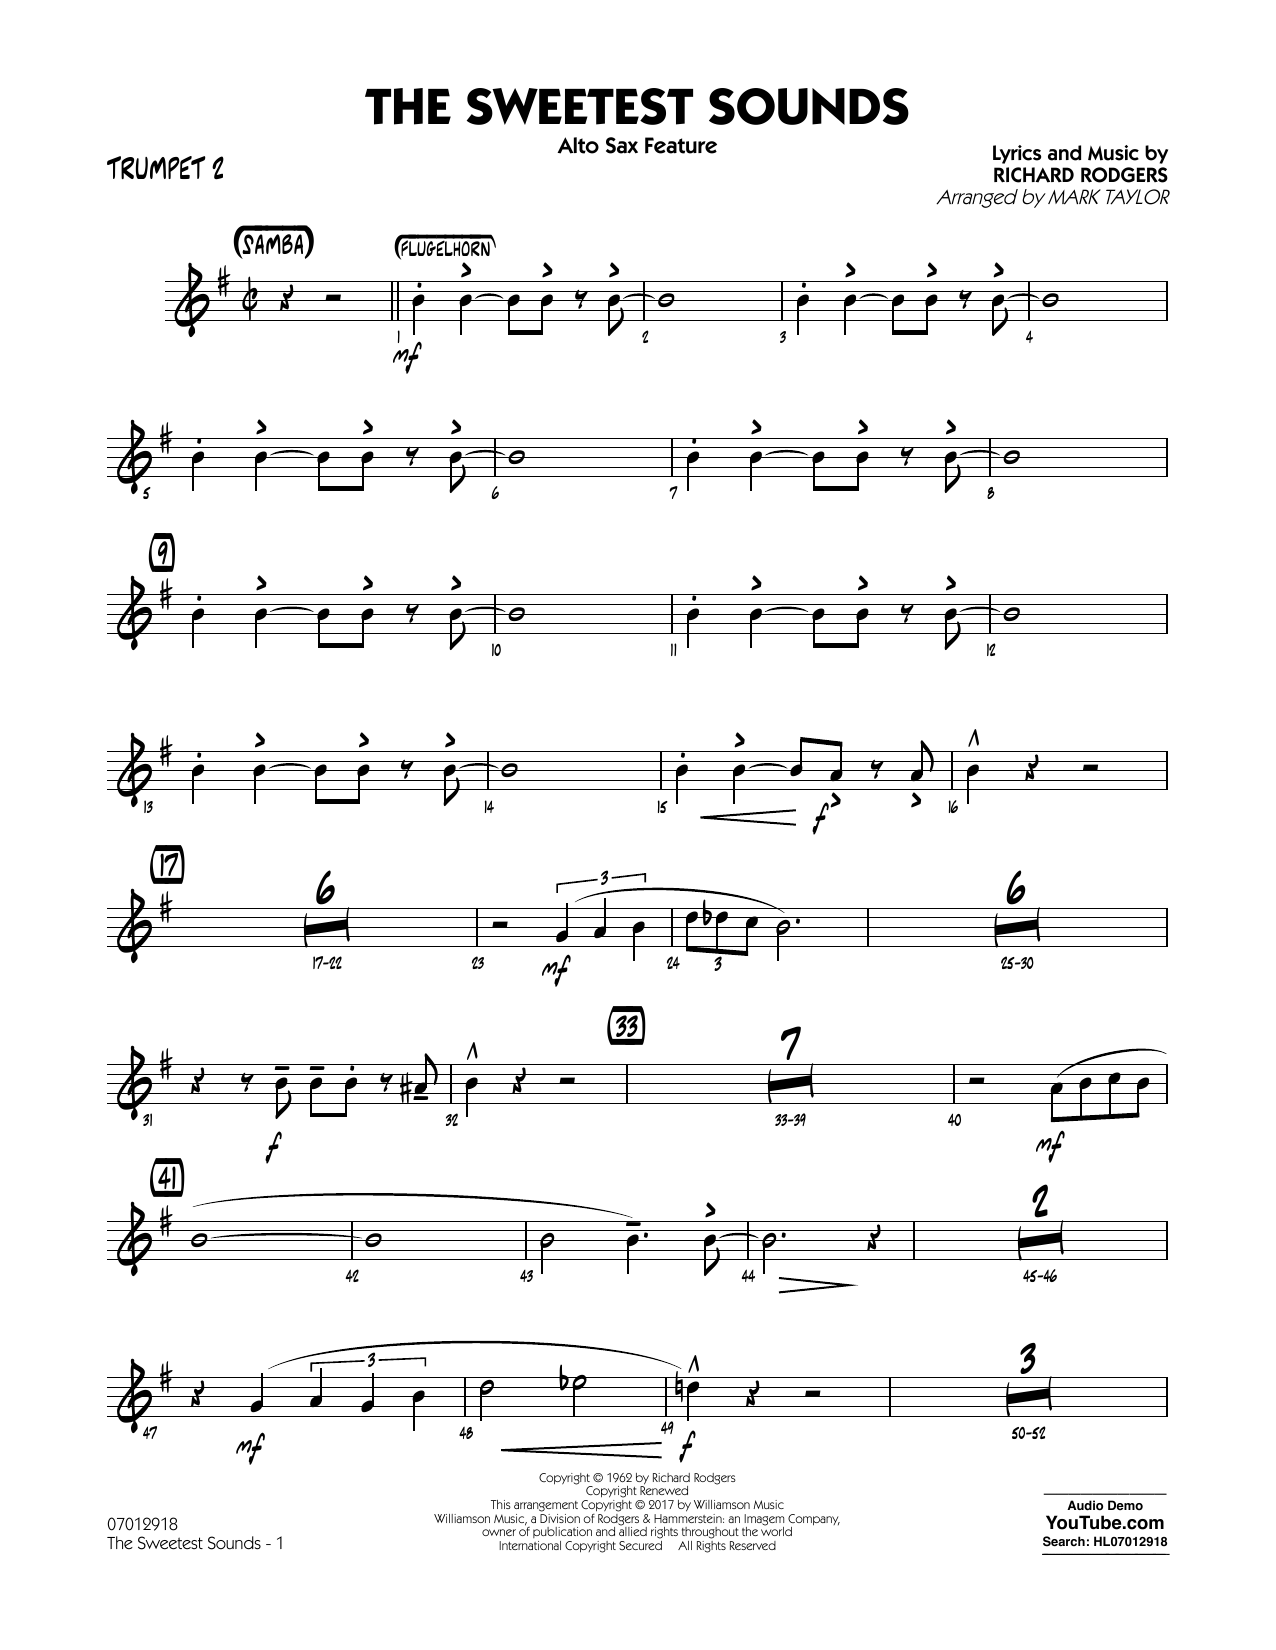 The Sweetest Sounds (Alto Sax Feature) - Trumpet 2 Sheet Music